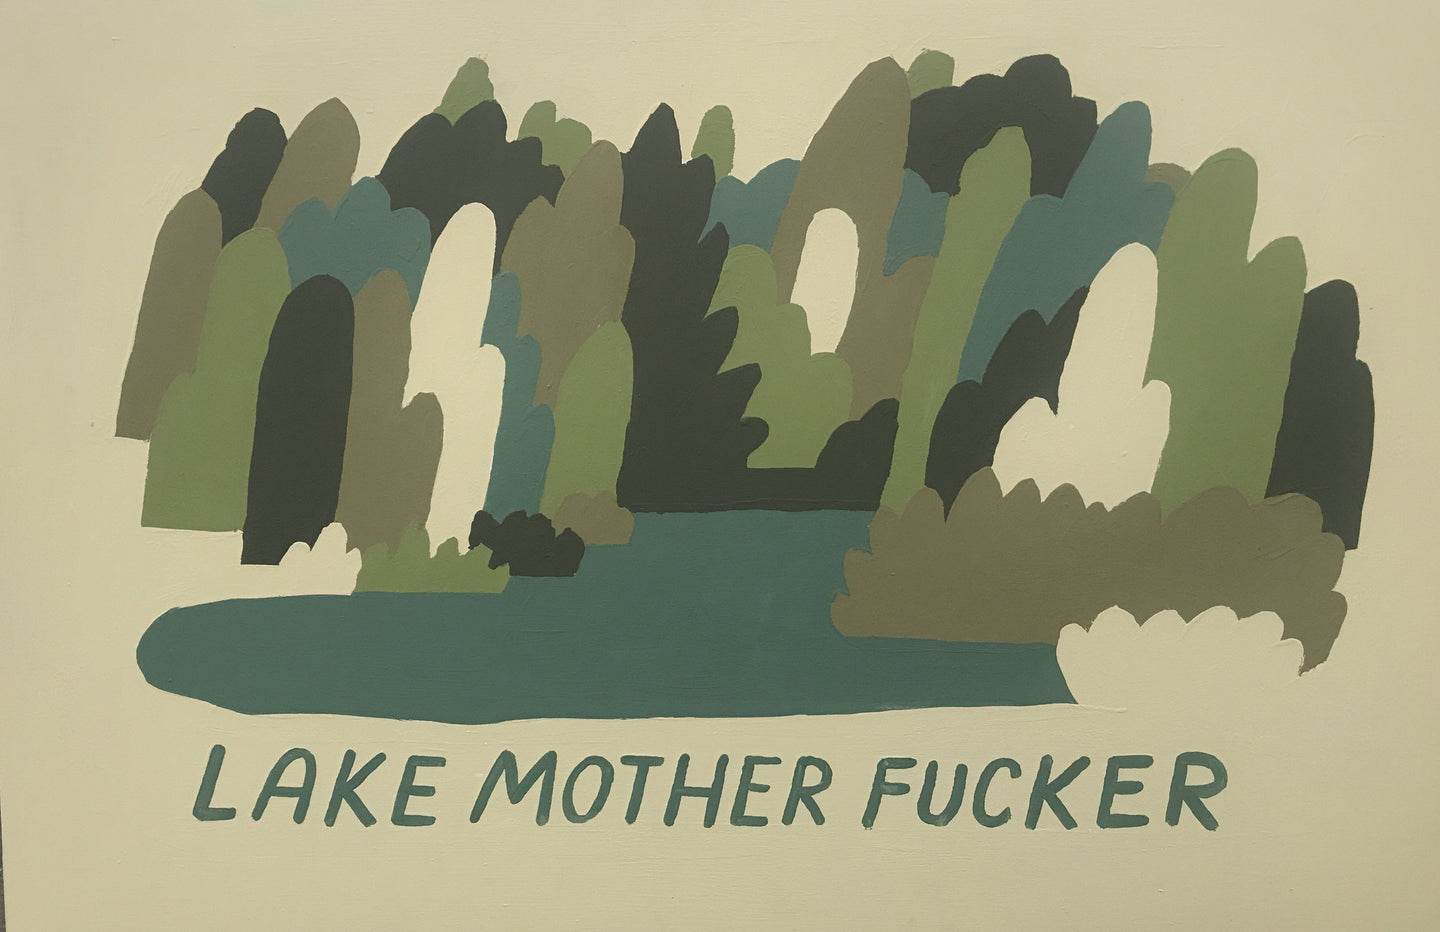 Lake Mother Fucker